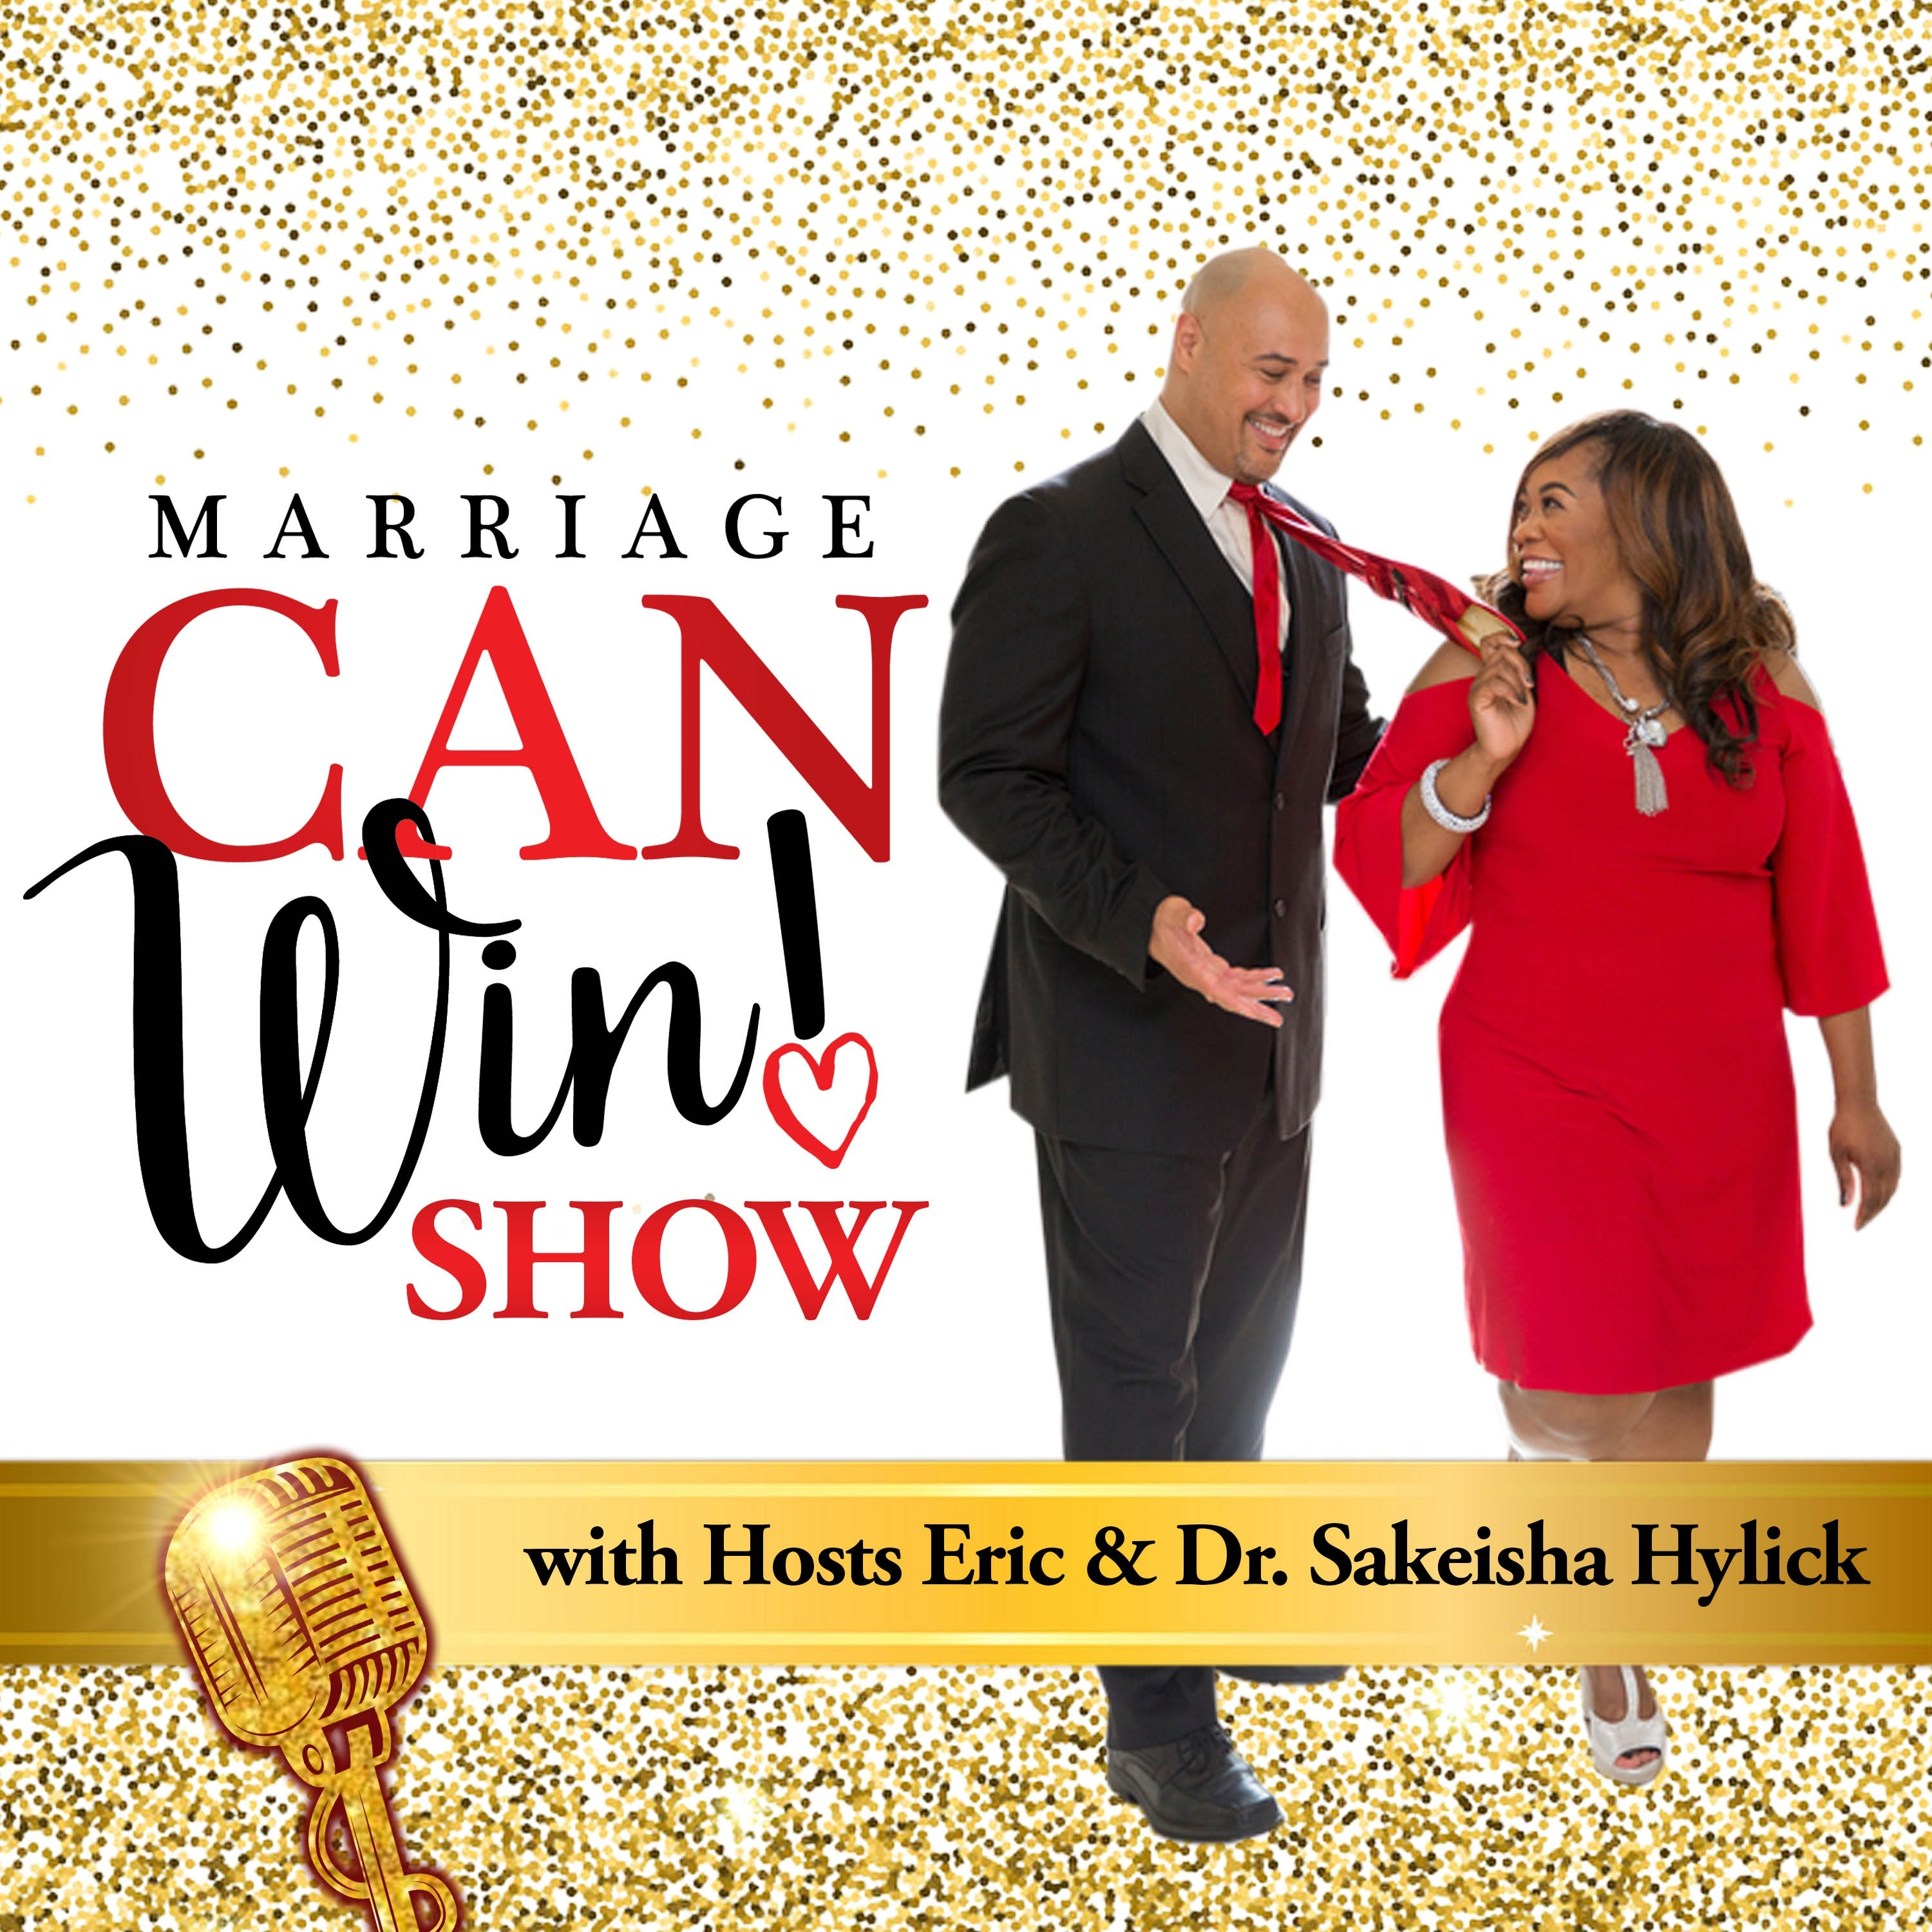 Marriage Can Win Show!